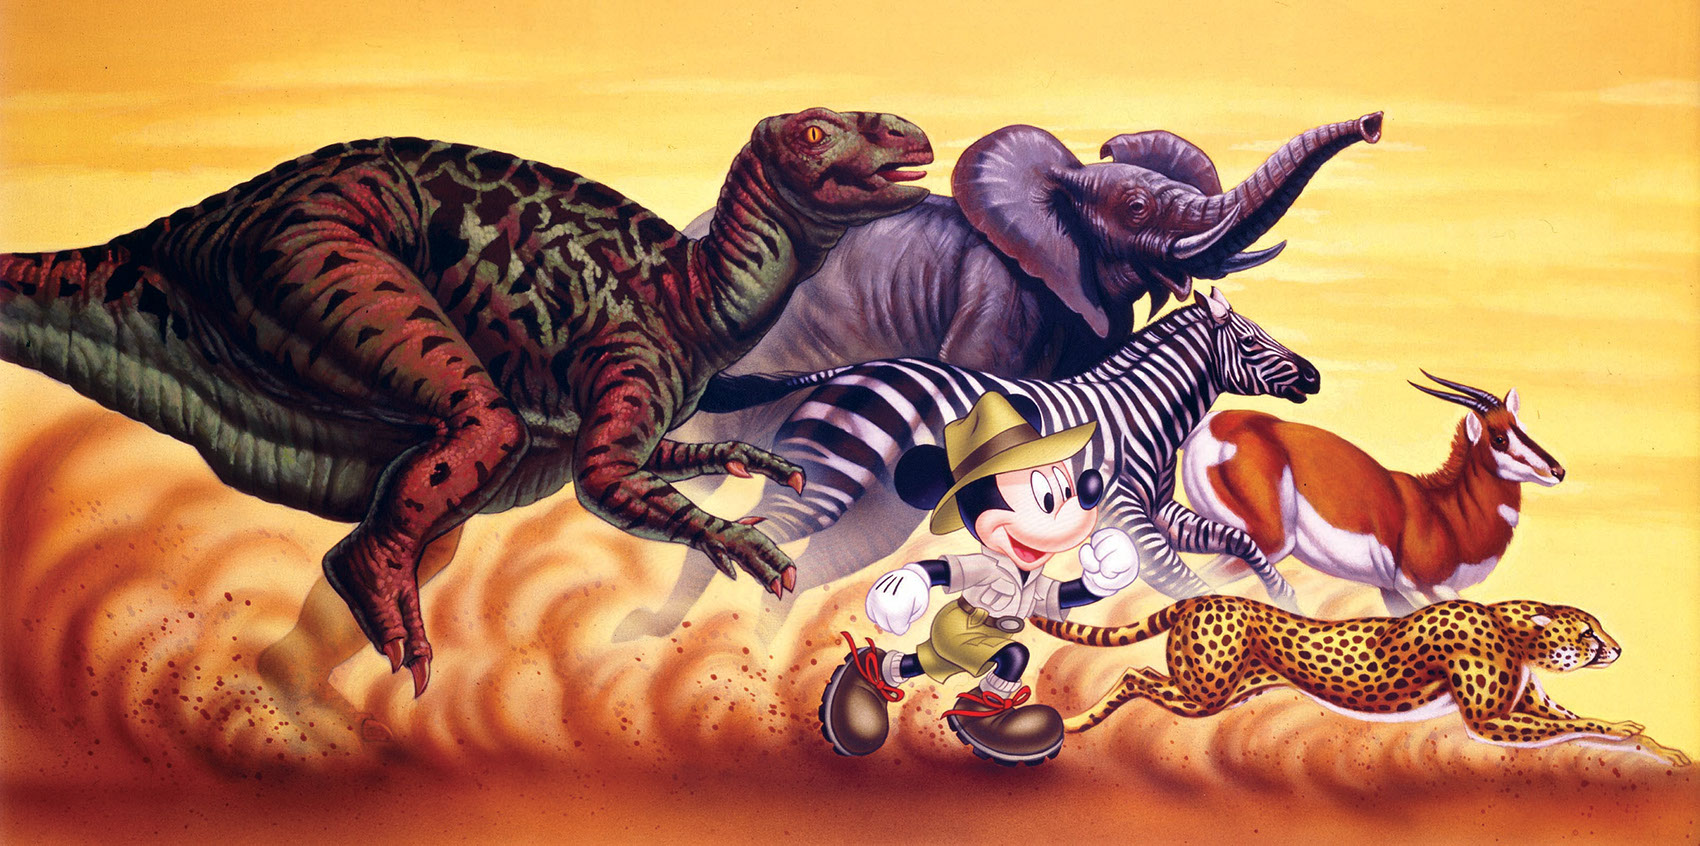 illustration-Animals and Nature_Safari Mickey-Shawn McKelvey